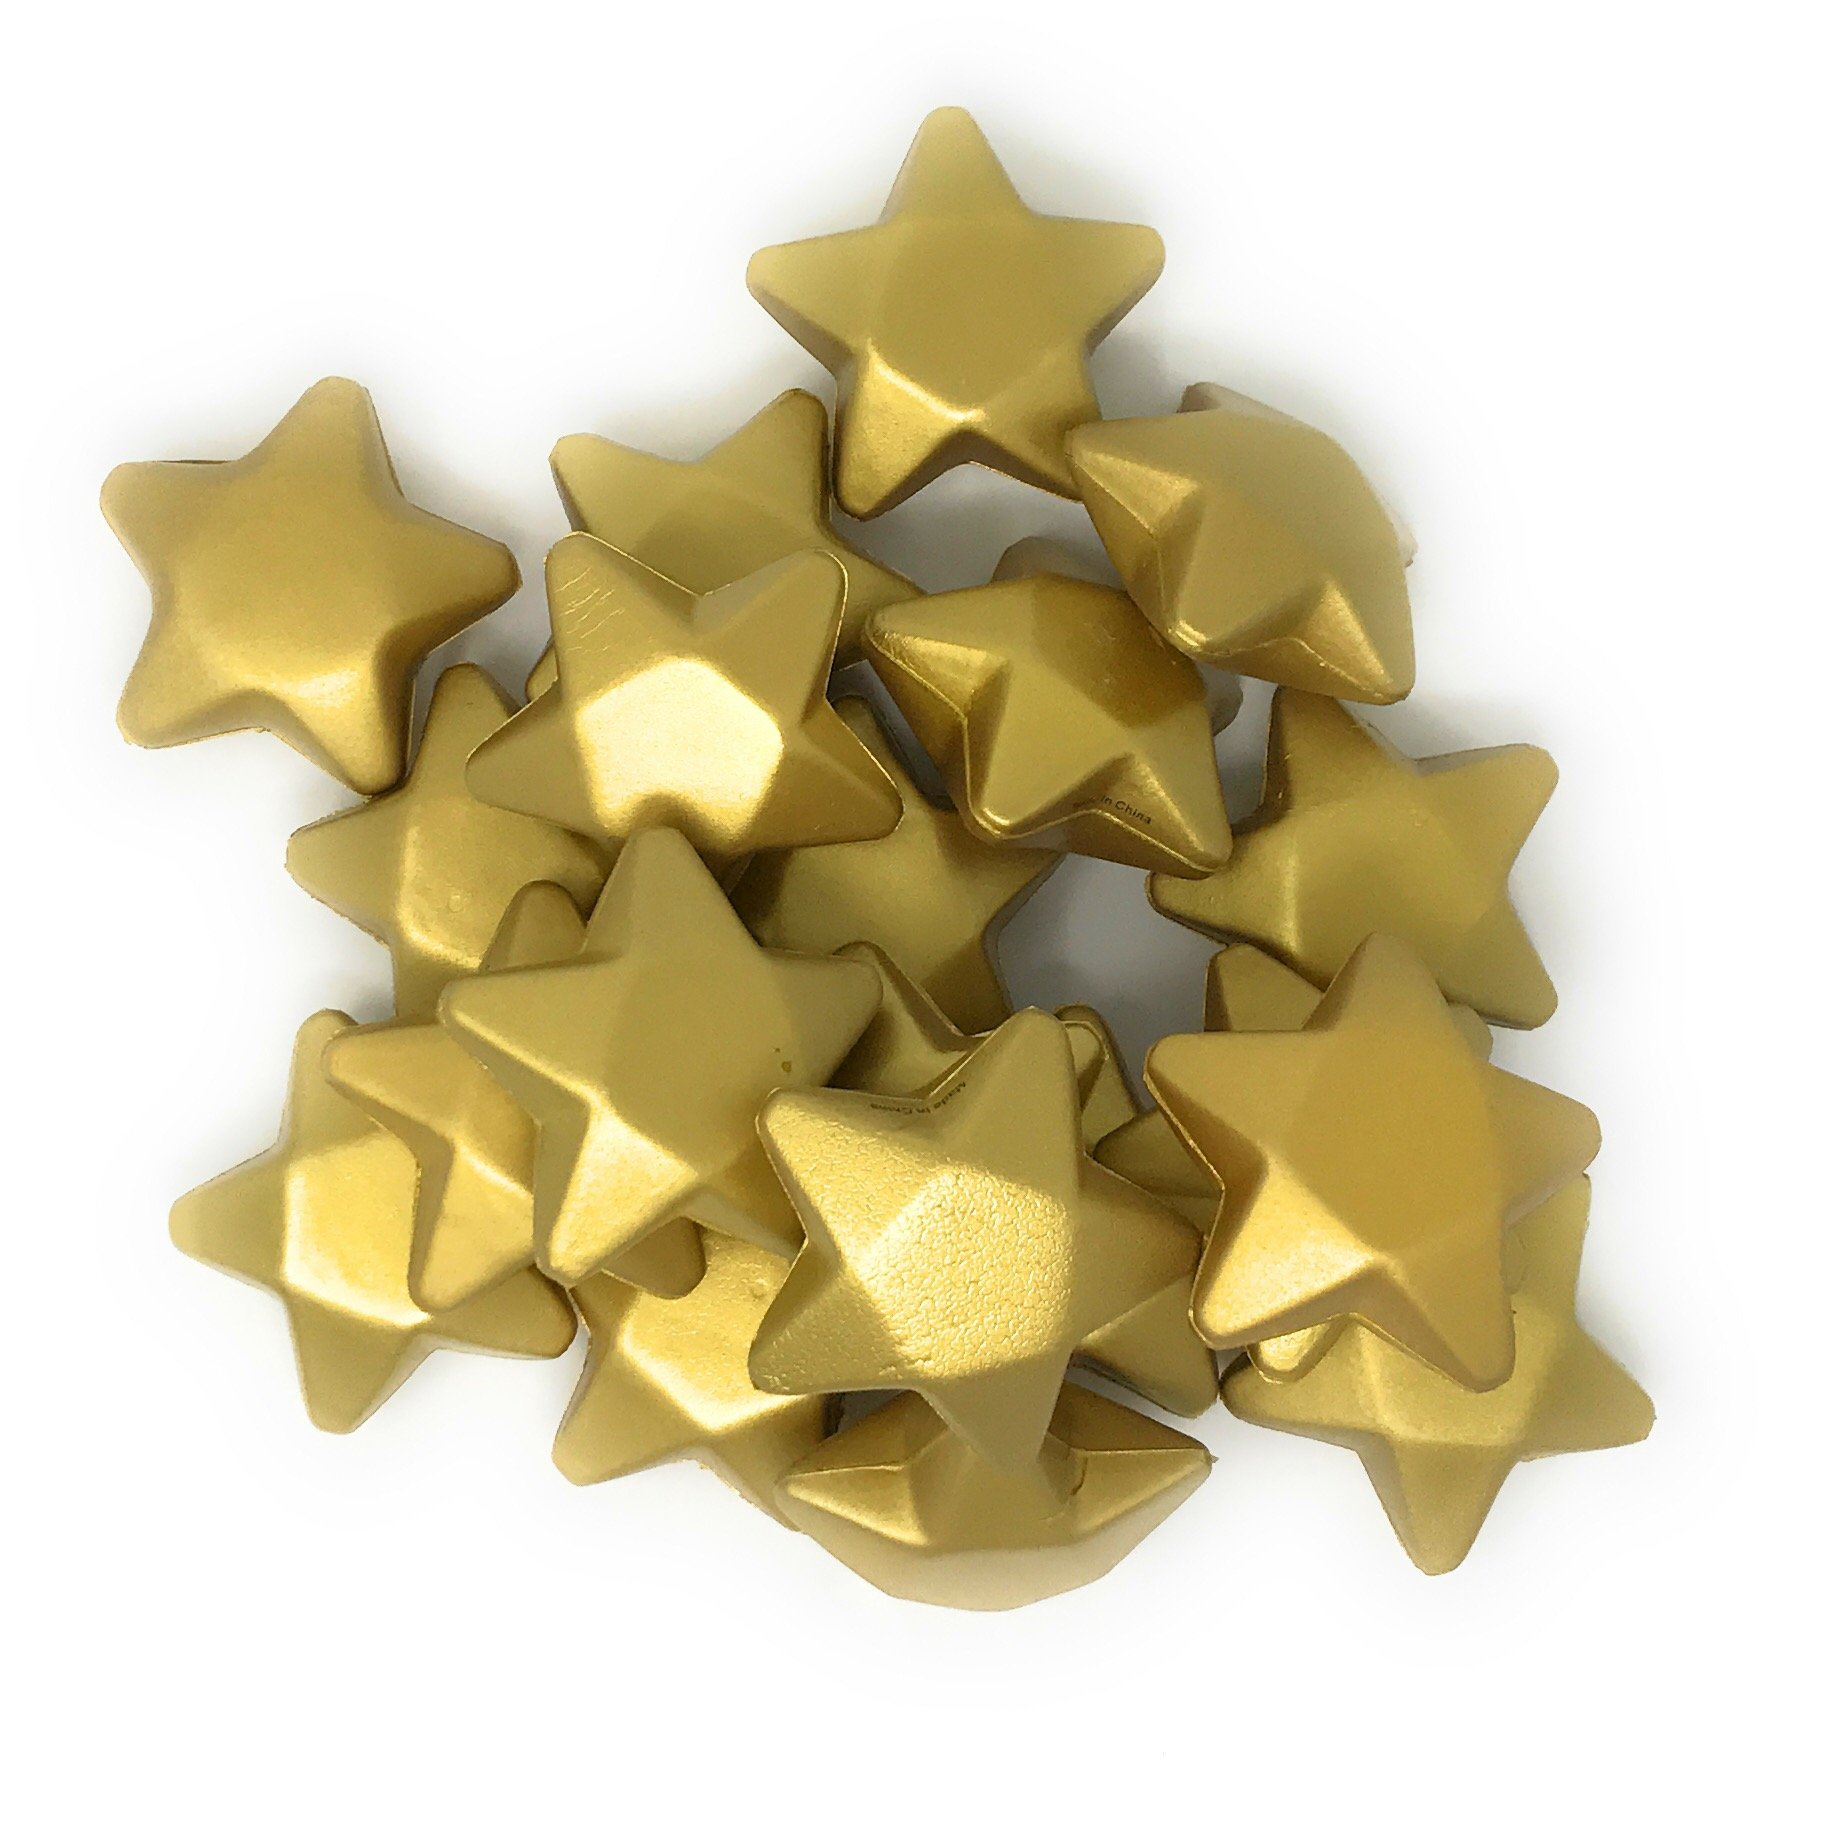 Sea View Treasures 20 Bulk 3'' Gold Star Award Stress Relievers - Perfect Office Awards, Student Prizes, or Camp Trophies by Sea View Treasures